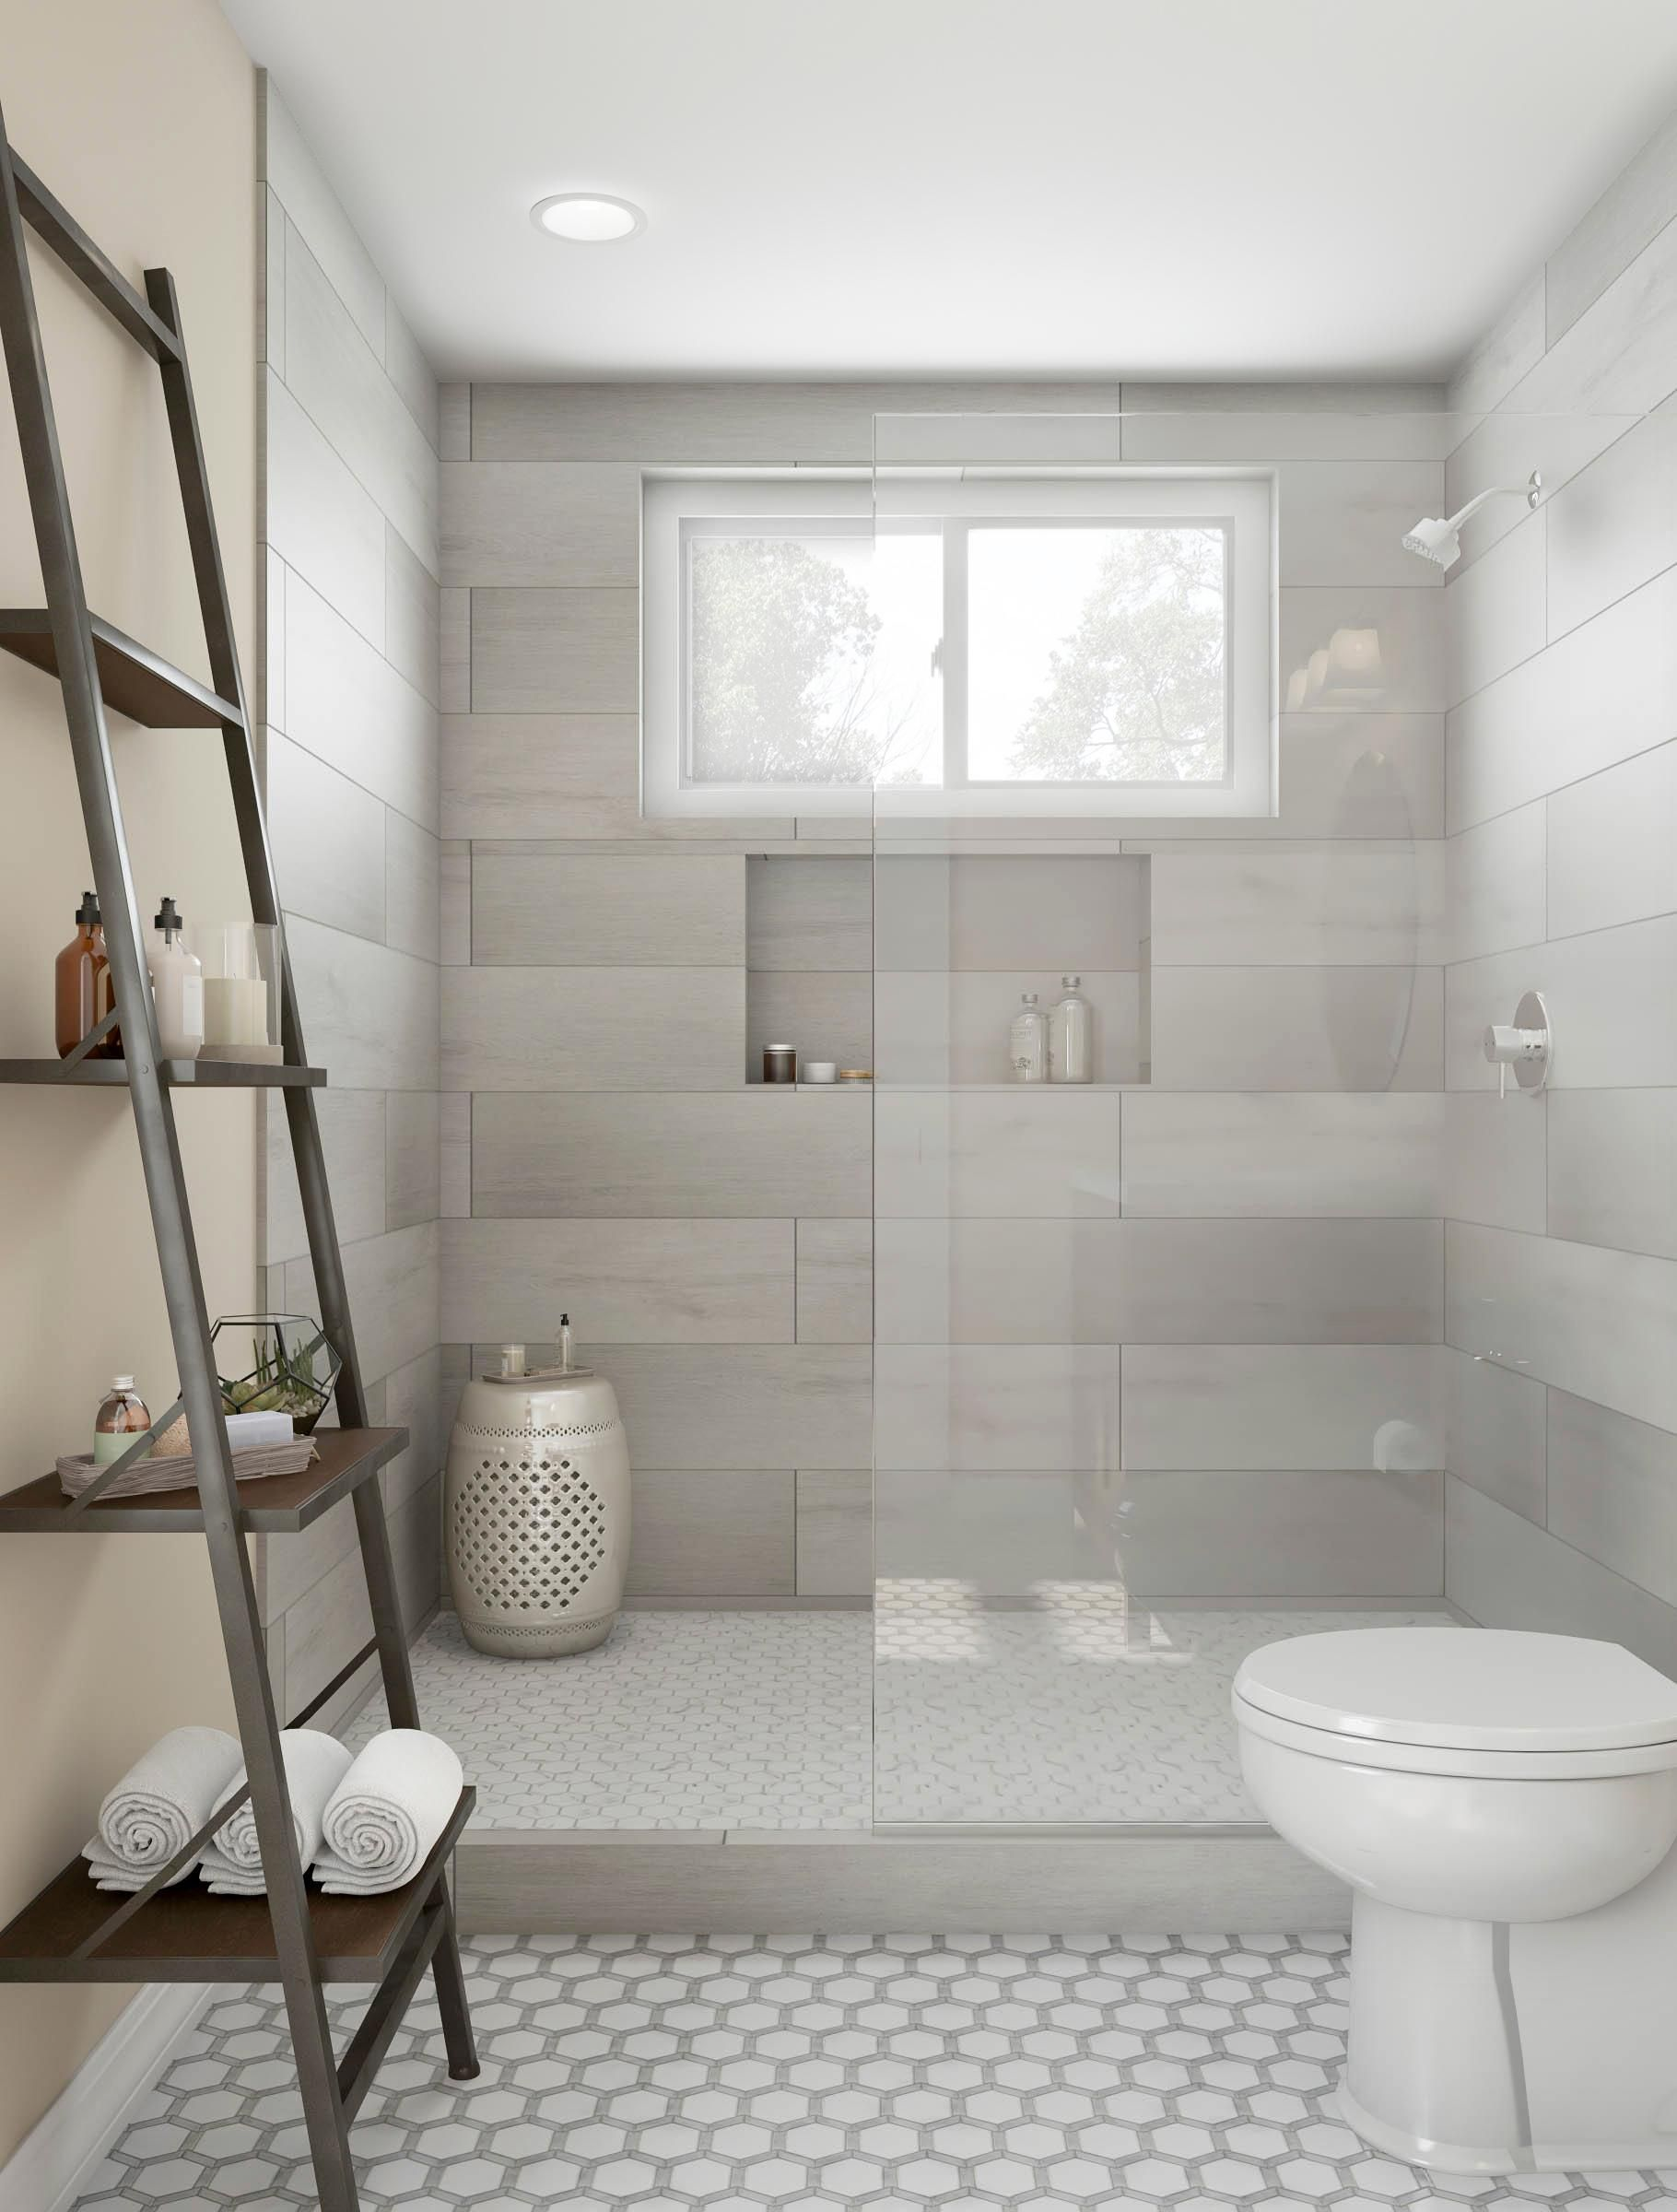 Bathroom Tile Ideas It Is Important To Have A Comfortable And Hygiene Bathroom At Home You Master Bathroom Shower Bathroom Remodel Shower Bathrooms Remodel